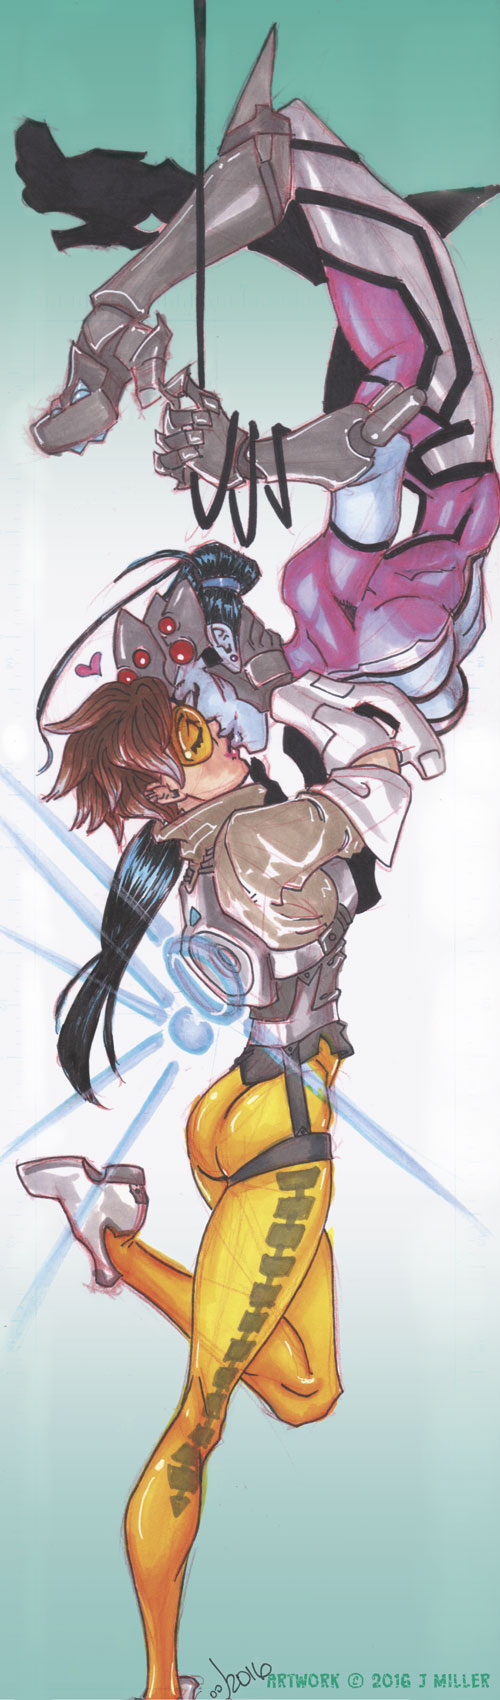 Overwatch WidowTracer